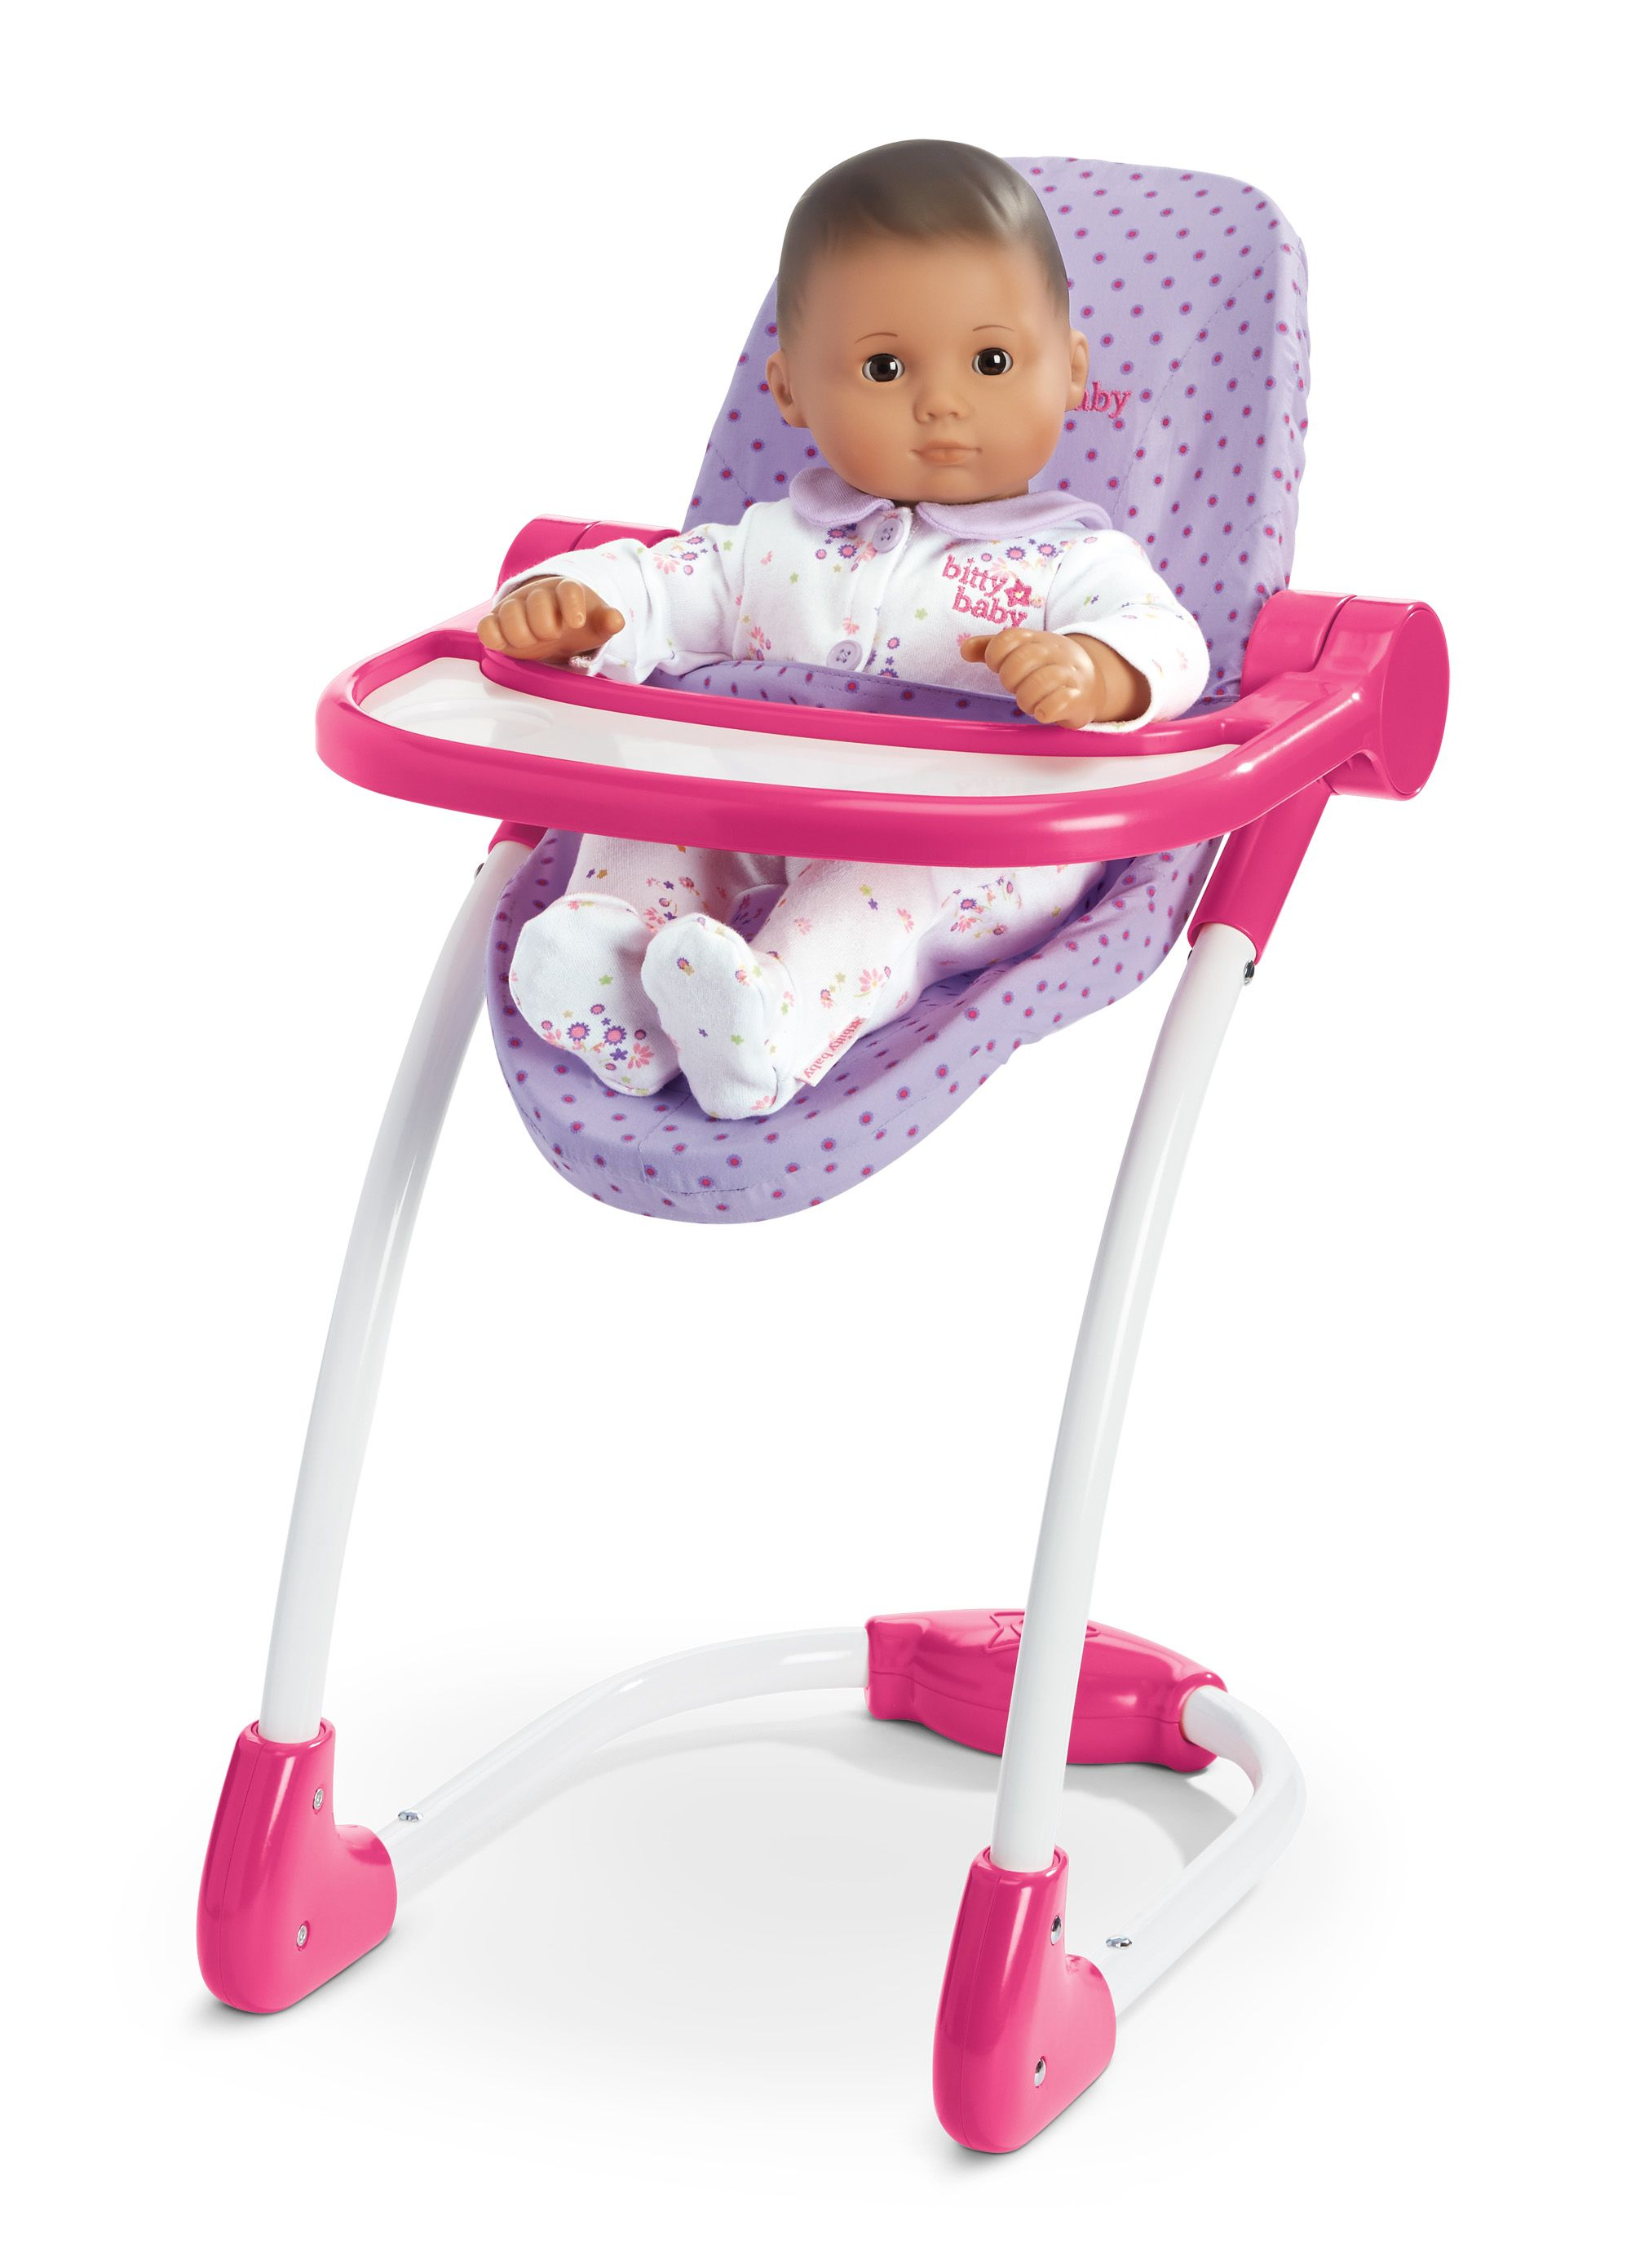 Bitty s High Chair Bitty Baby Pinterest